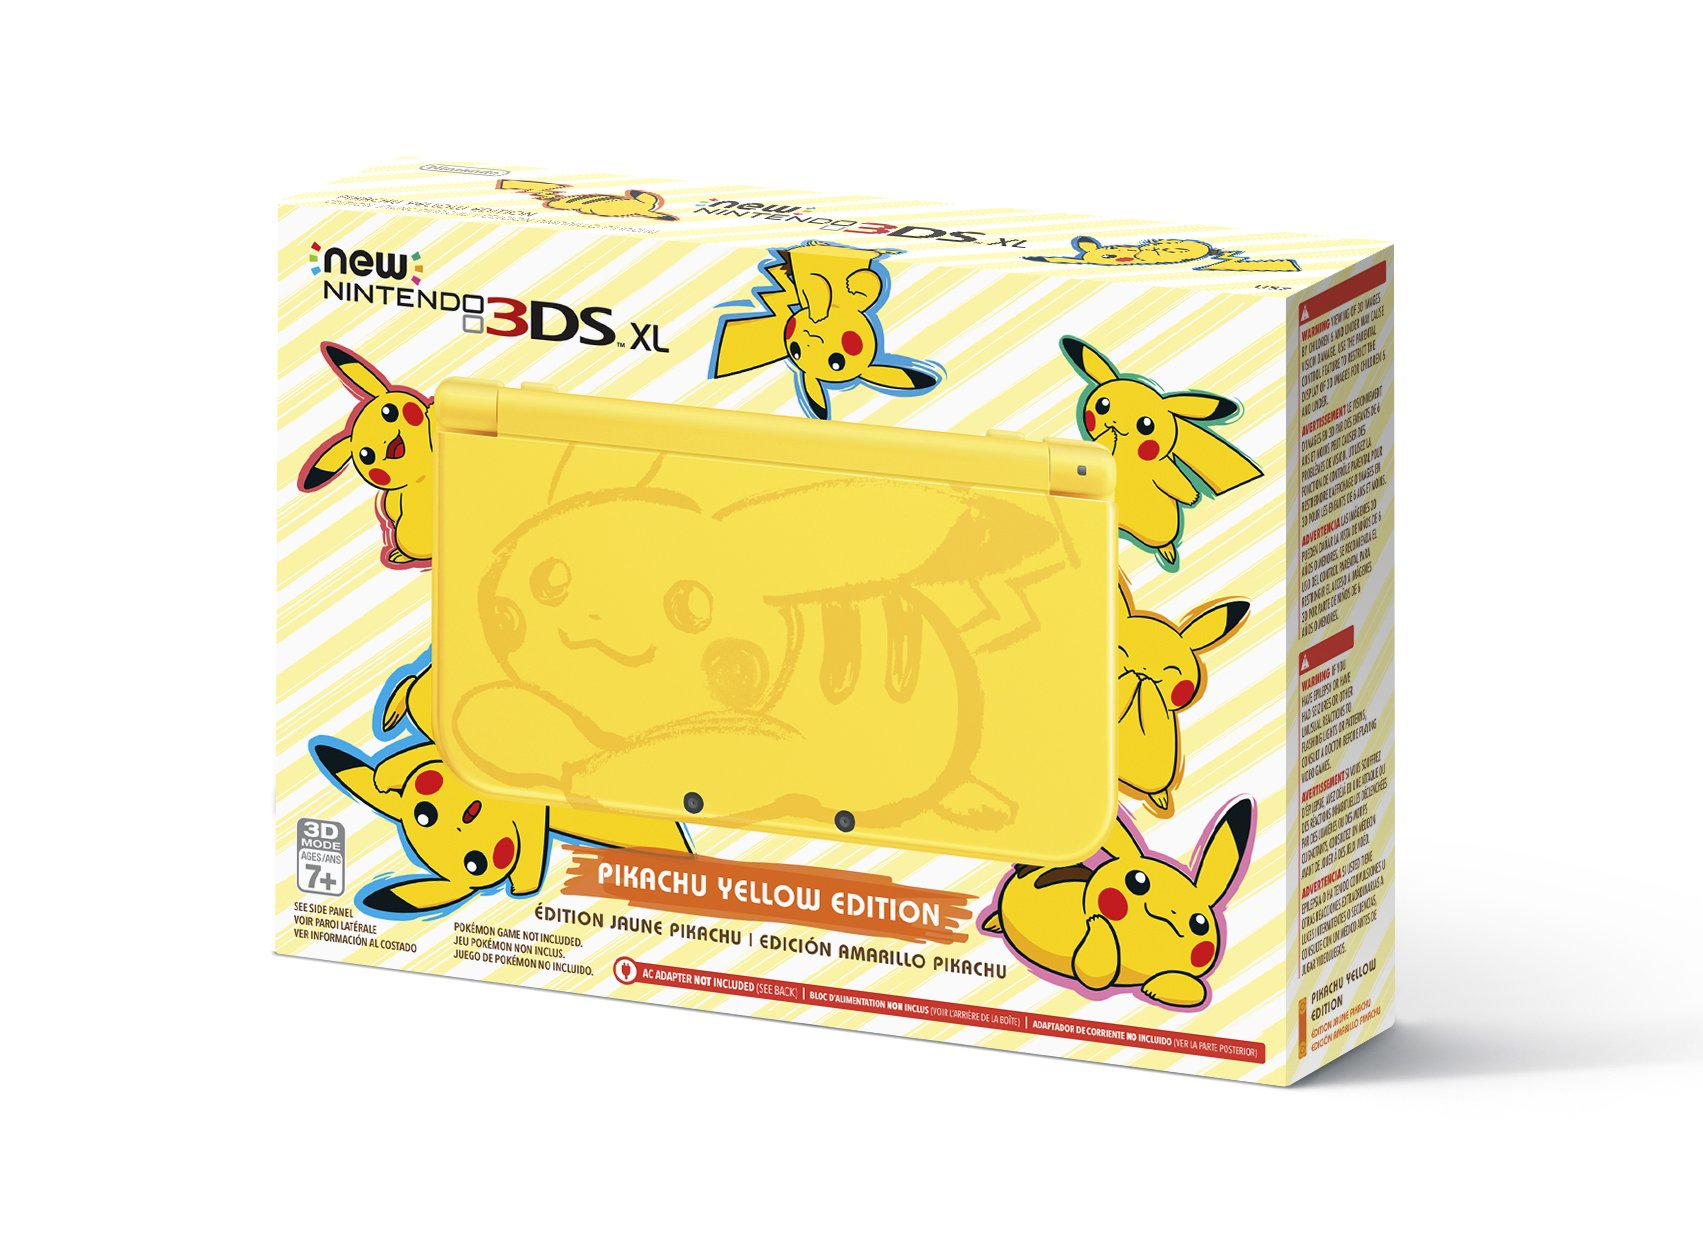 Nintendo New 3DS XL - Pikachu Yellow Edition [Discontinued] by Nintendo